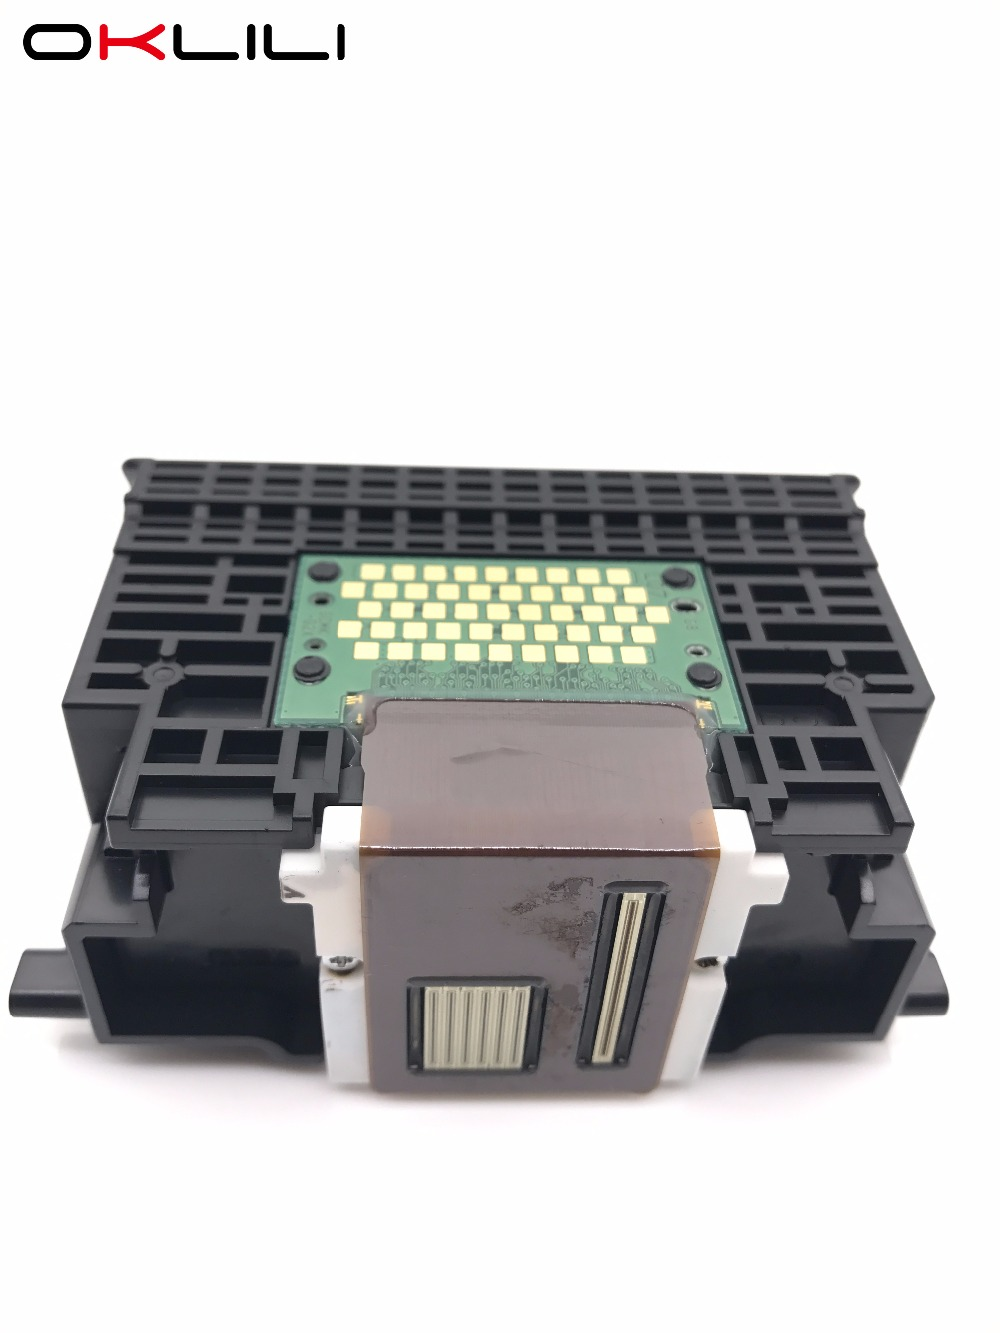 OKLILI ORIGINAL QY6-0061 QY6-0061-000 Printhead Print Head for Canon iP4300 iP5200 iP5200R MP600 MP600R MP800 MP800R MP830 oklili original qy6 0045 qy6 0045 000 printhead print head printer head for canon i550 pixus 550i